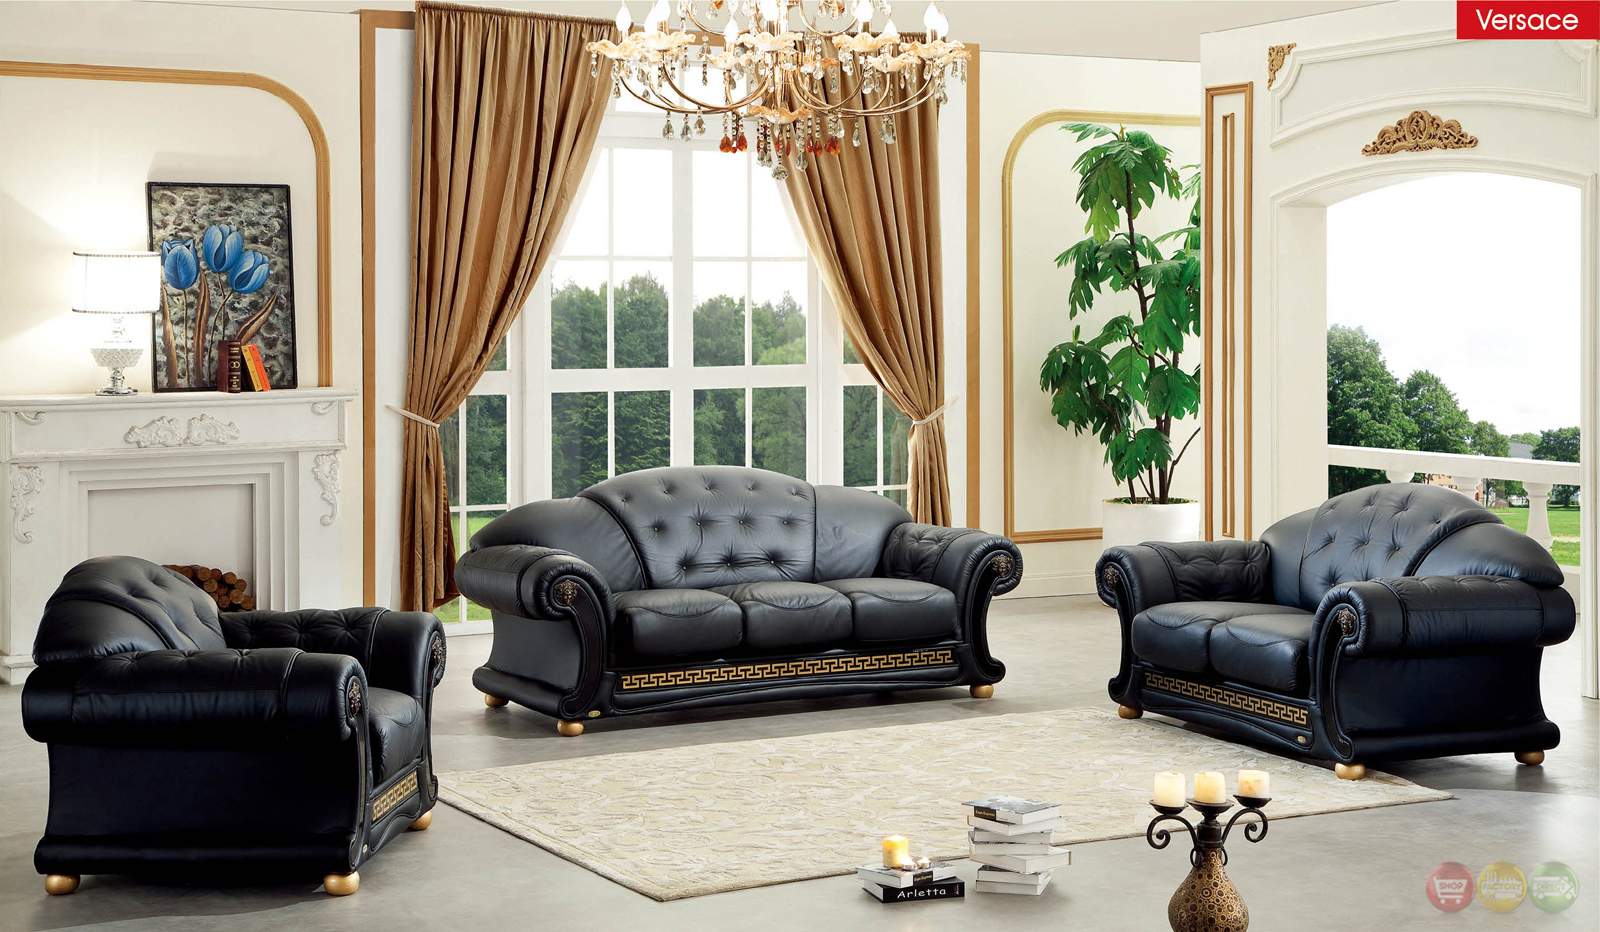 Versace living room set black leather living room set for Living room with black leather furniture